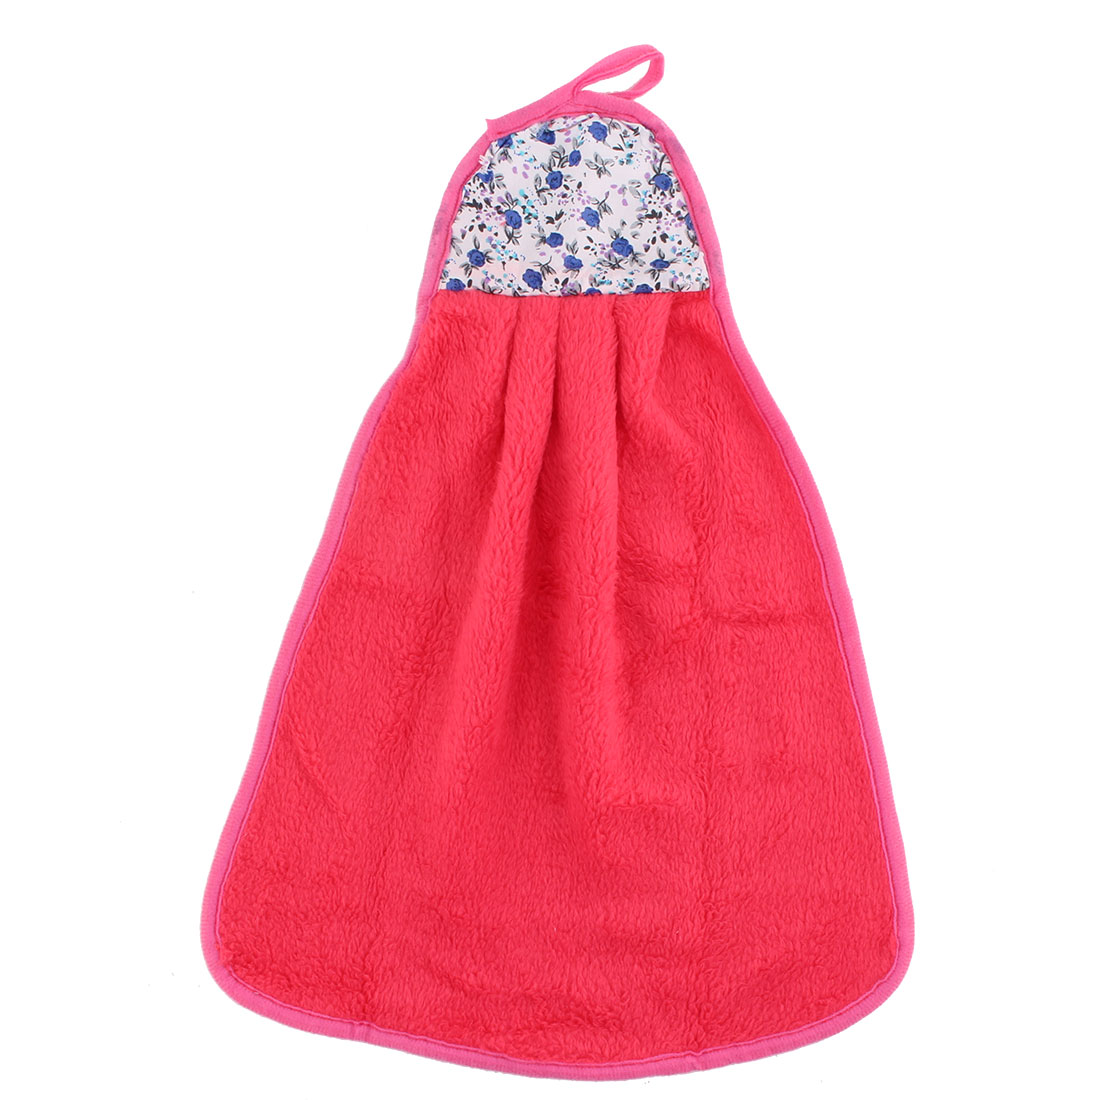 Home Kitchen Coral Velvet Floral Pattern Wall Hanging Hand Drying Towel Red